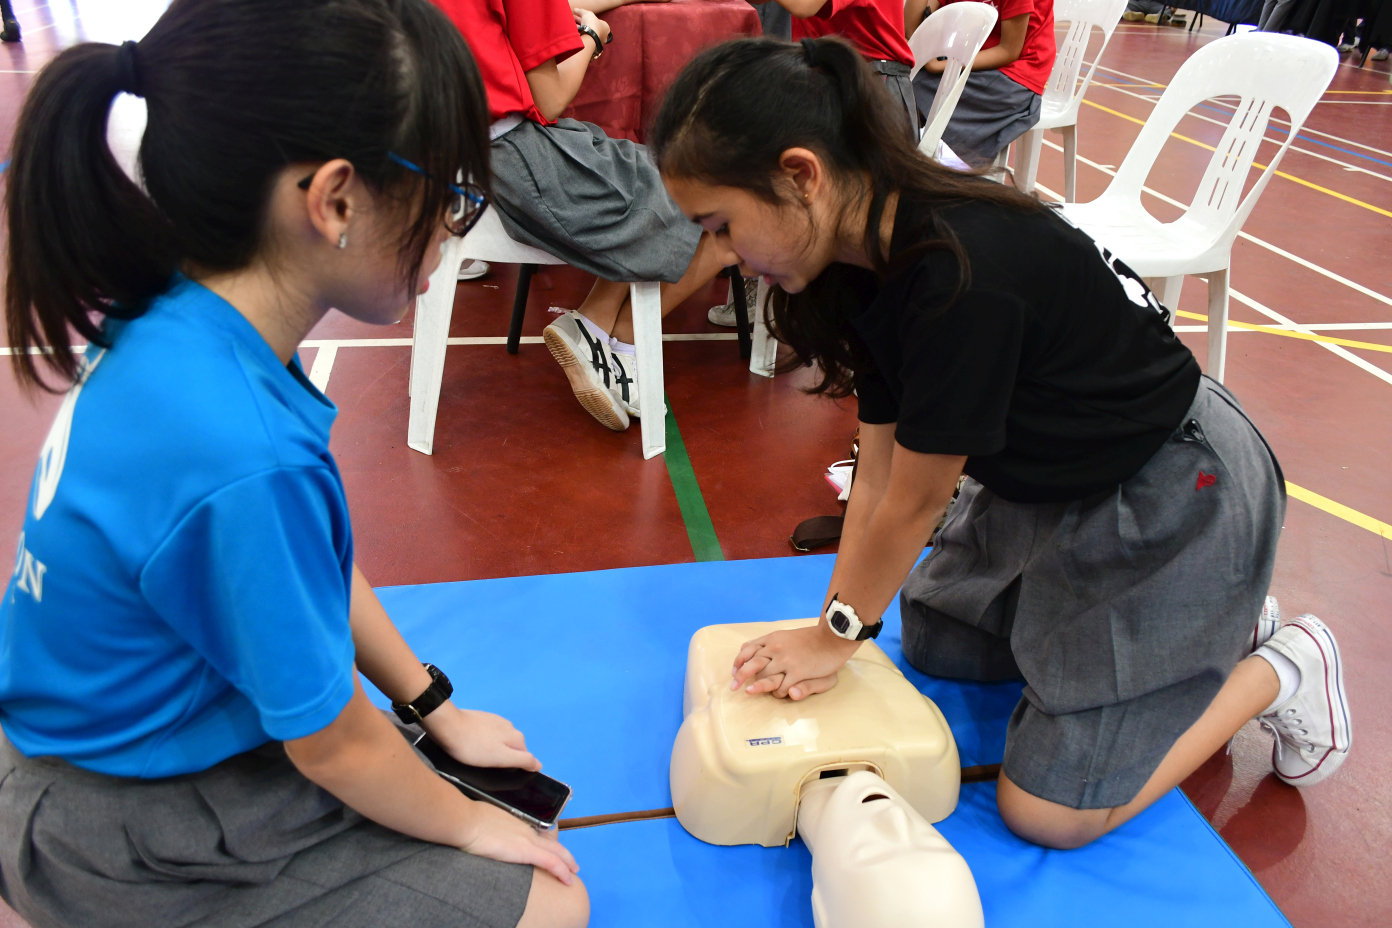 Showing how Cardio-Pulmonary Resuscitation (CPR) is done